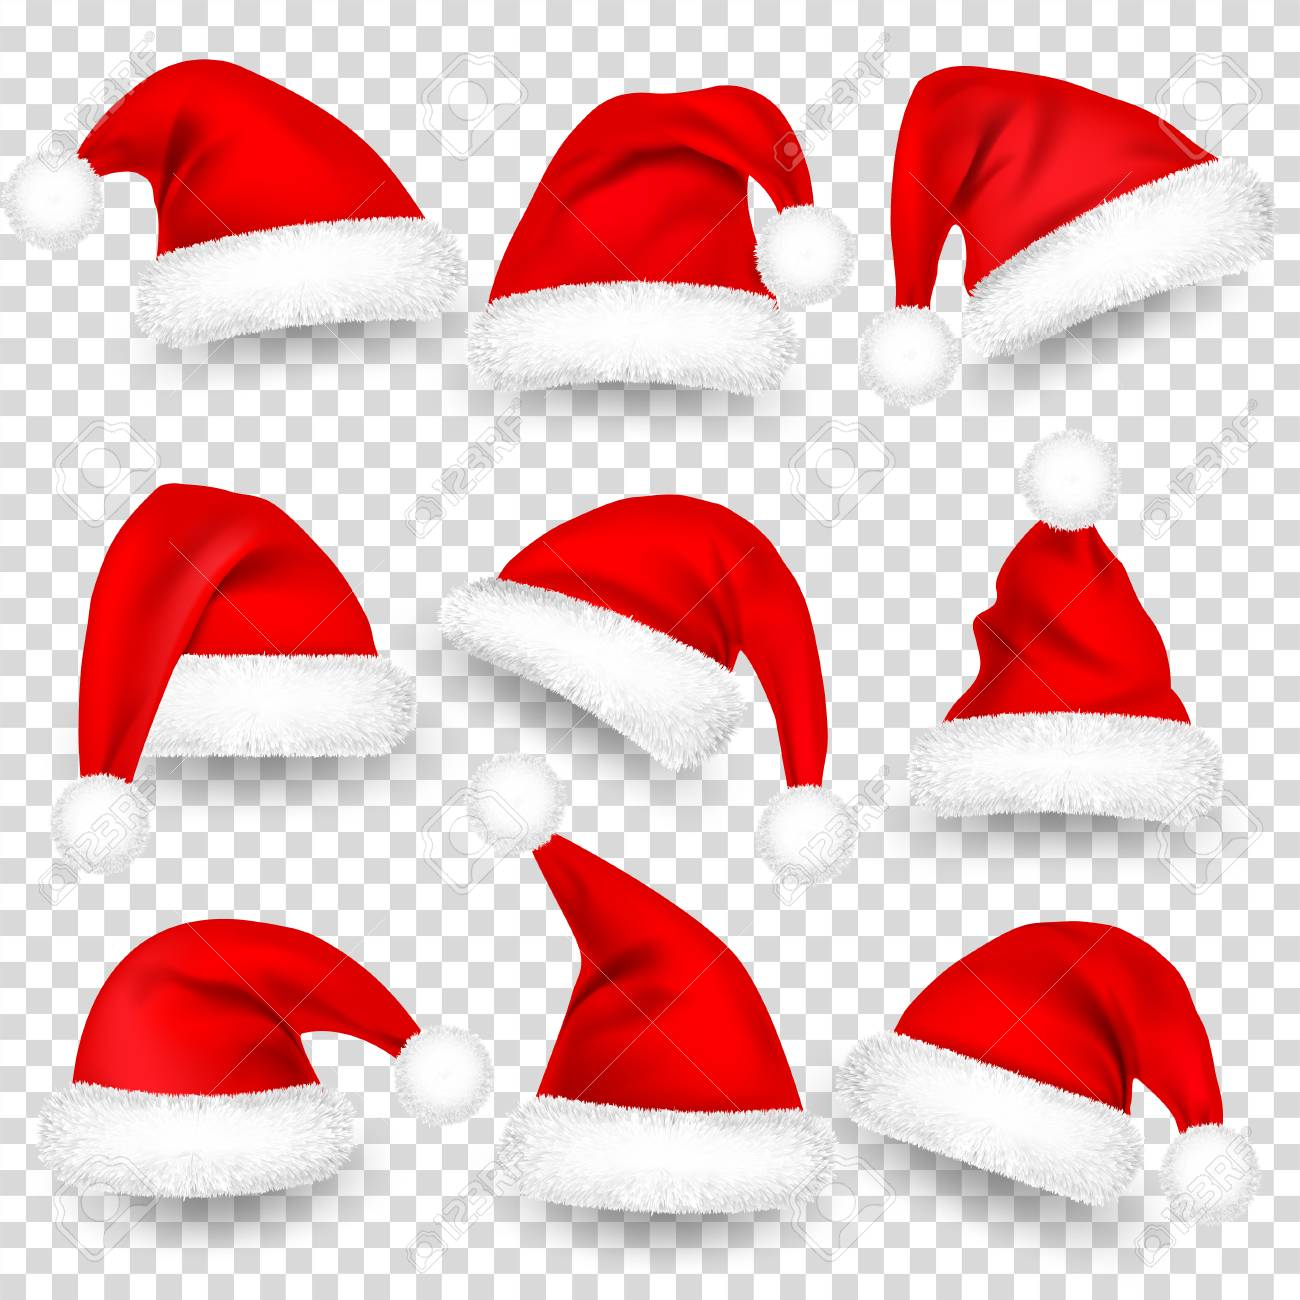 Christmas Santa Hats With Fur and Shadow Set. New Year Red Hat Isolated on Transparent Background. Winter Cap. Vector illustration. - 115591119